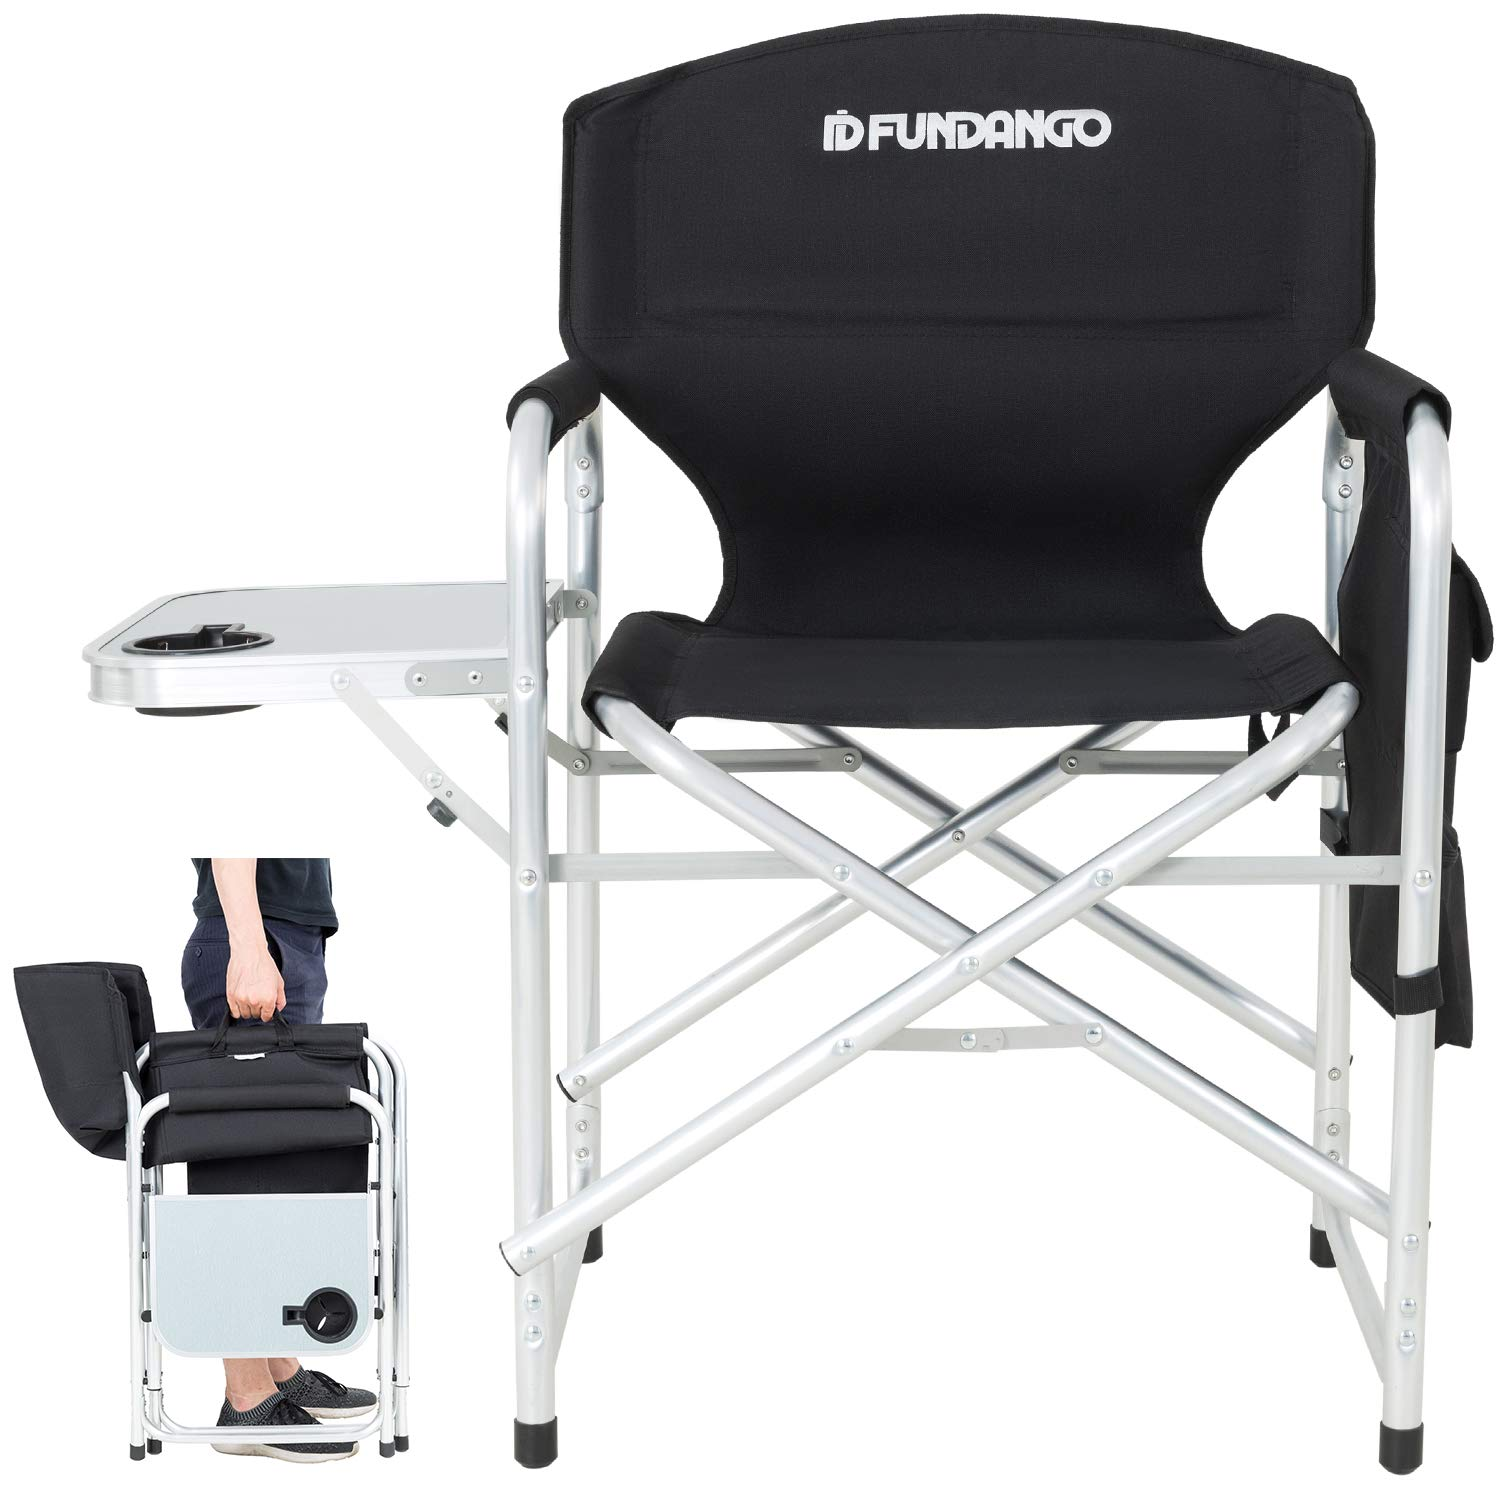 Pleasant Fundango Lightweight Folding Directors Chair Portable Camping Chairs Padded Full Back Aluminum Frame Lawn Chair With Armrest Side Table And Handle For Beutiful Home Inspiration Aditmahrainfo